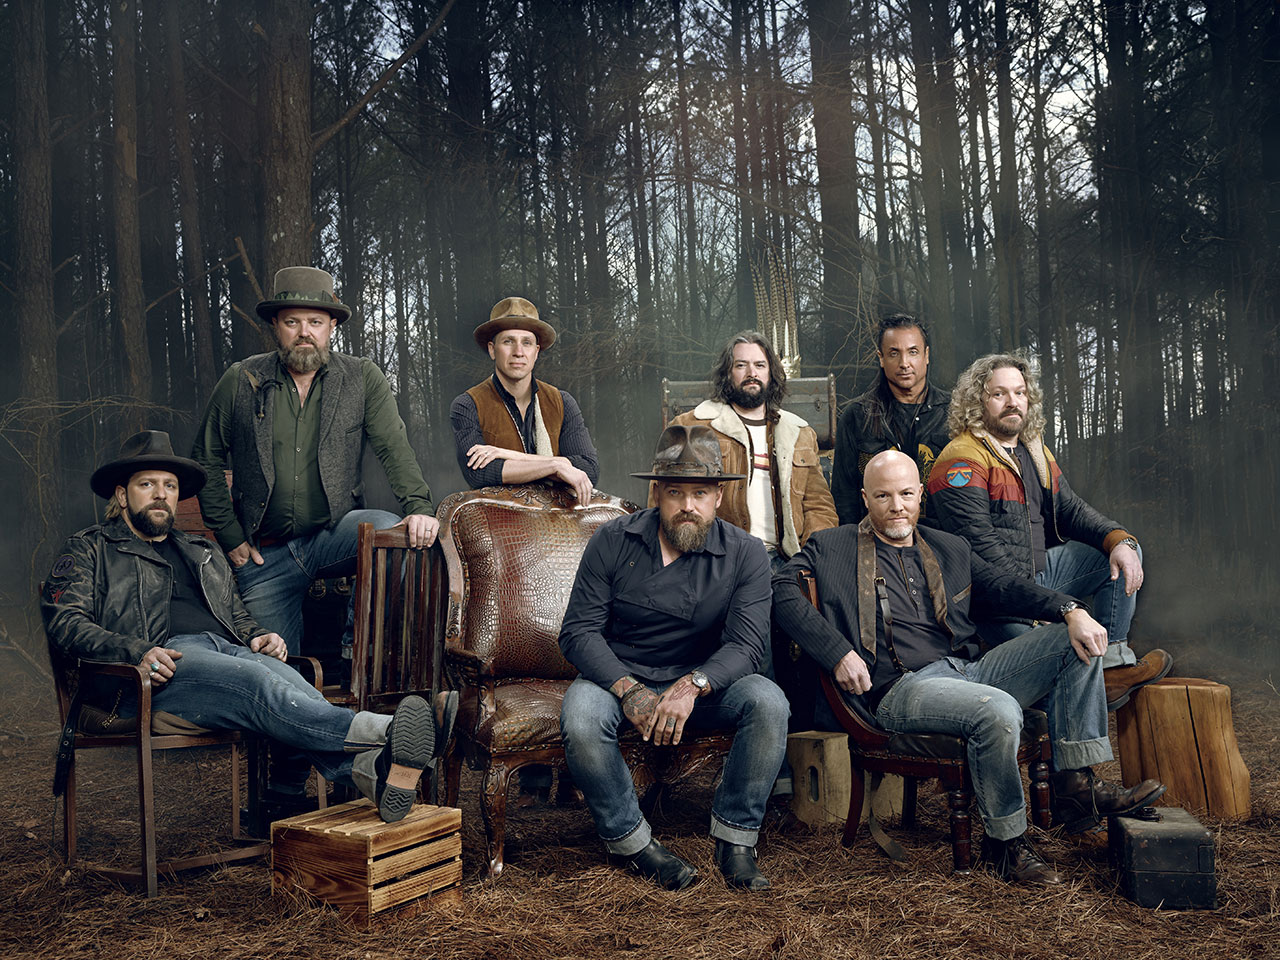 Zac Brown Band Image #1